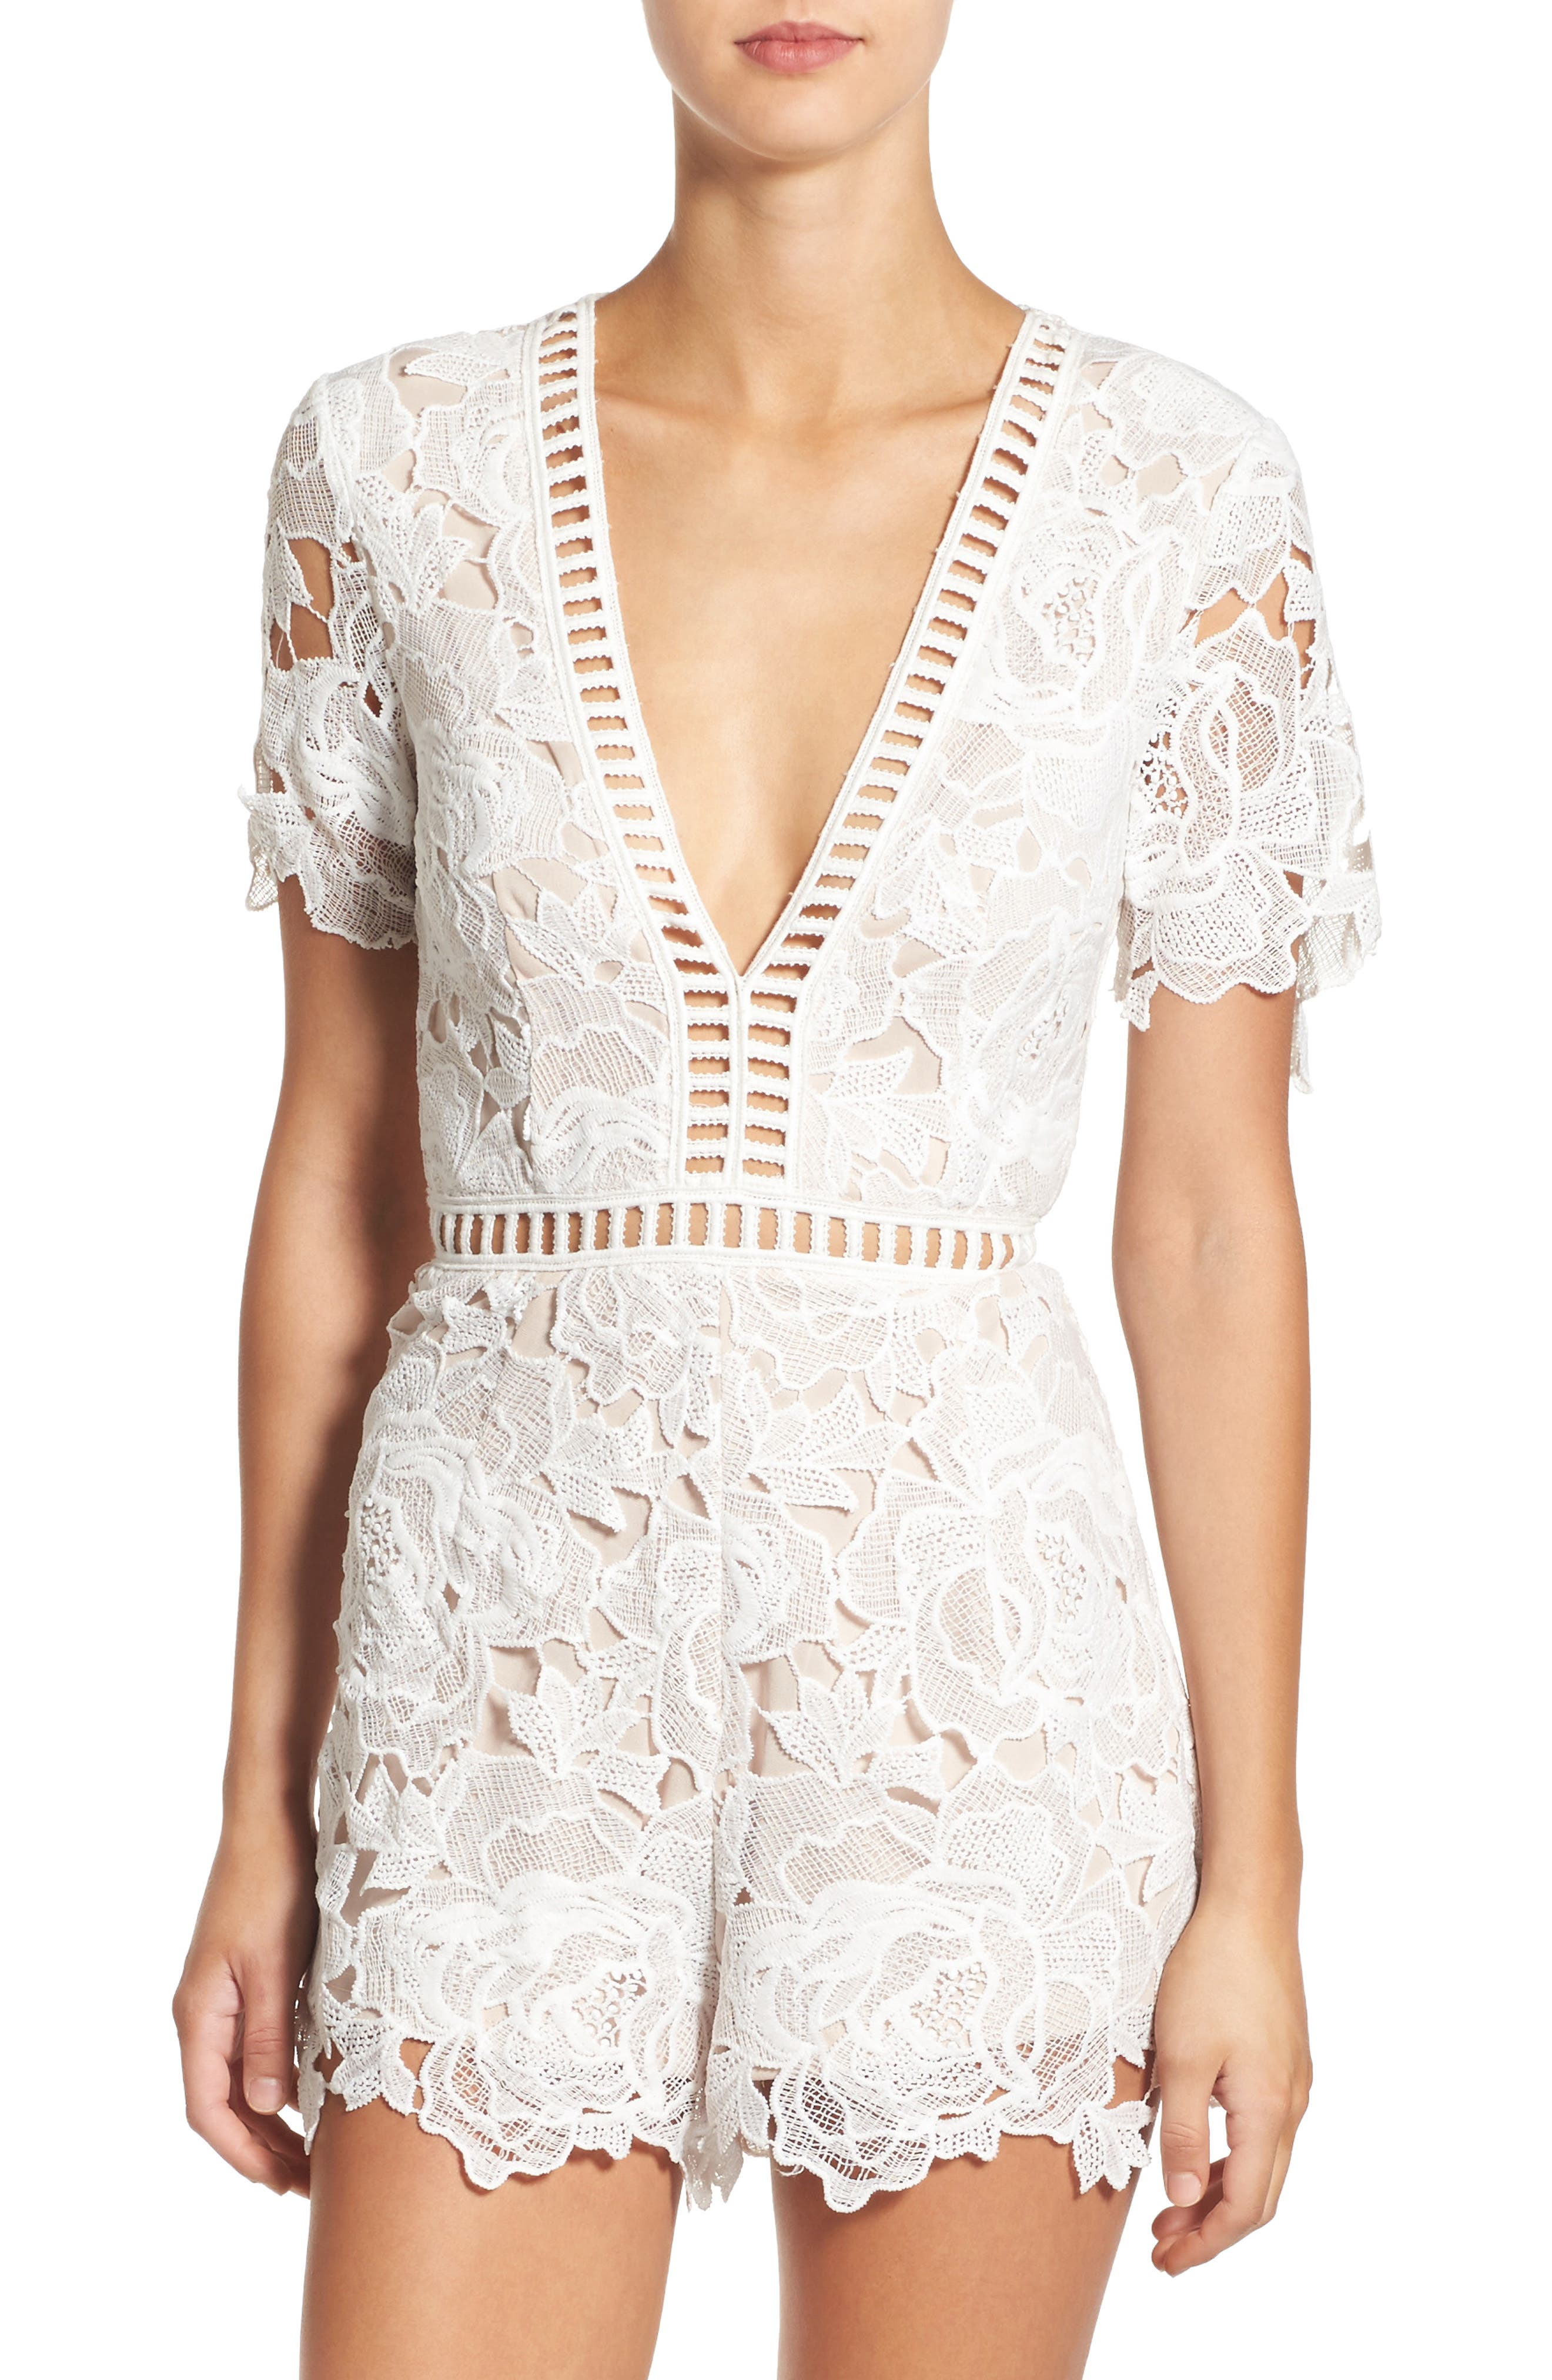 Ladder Inset Lace Romper,                             Main thumbnail 1, color,                             White/ Nude